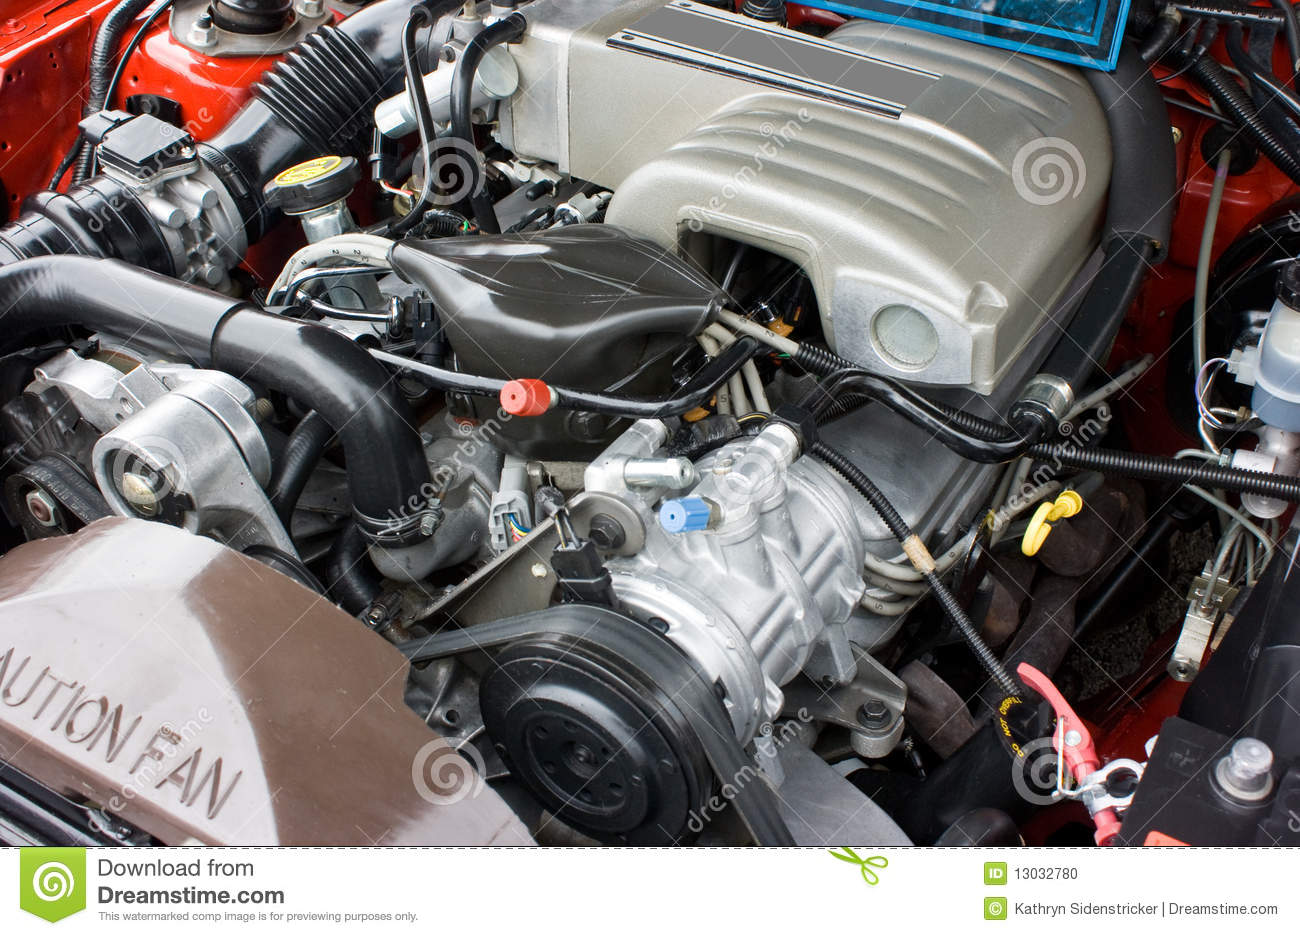 2003 Grand Marquis Wiring Diagram 1993 Ford Mustang 5 0 V8 Engine Stock Photo Image 13032780